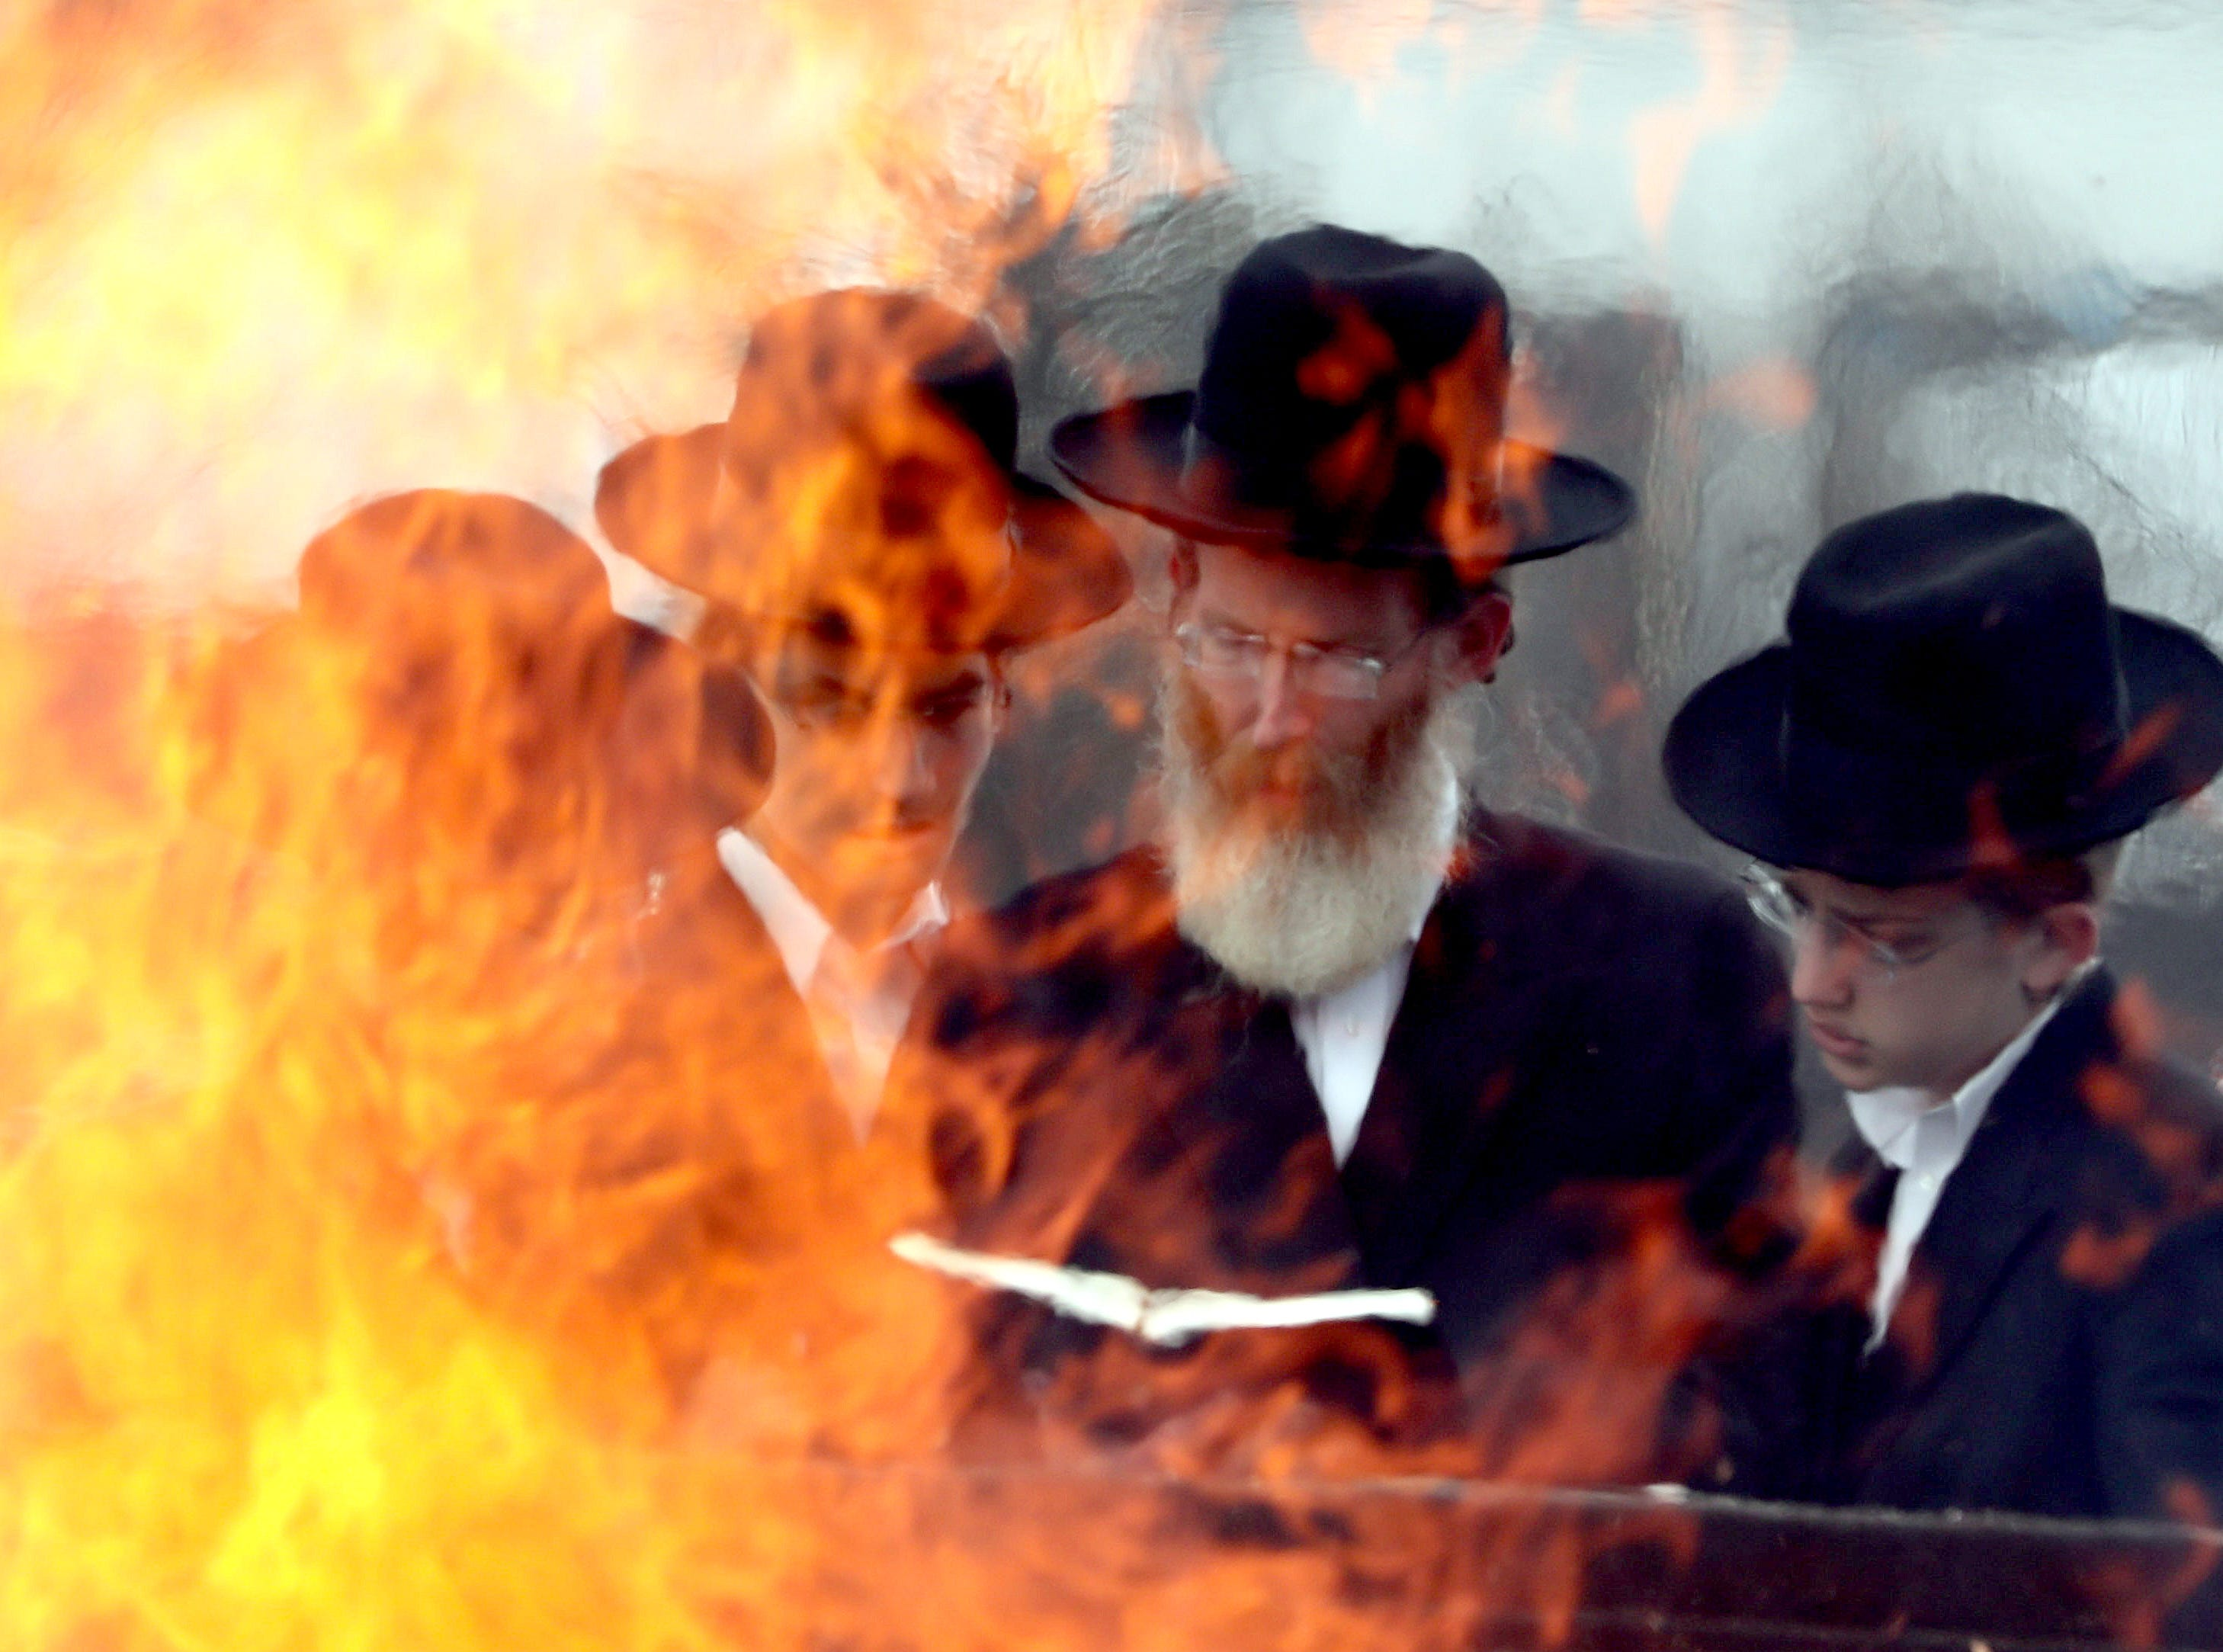 Orthodox Jewish man and young boys read from scriptures as members of the community throw bread products into a fire at the old drive-in theater on route 59 in Spring Valley March 30, 2018 before the start of Passover, which begins at sundown. During the eight days of Passover, Jews abstain from eating bread and other leavened foods in commemoration of the Israelites who, when fleeing slavery in ancient Egypt, didn't have time to bake bread, and only had unleavened bread to take with them as they fled slavery. Thousands of Orthodox Jews threw their bread products into fires in several locations in Monsey and Spring Valley.